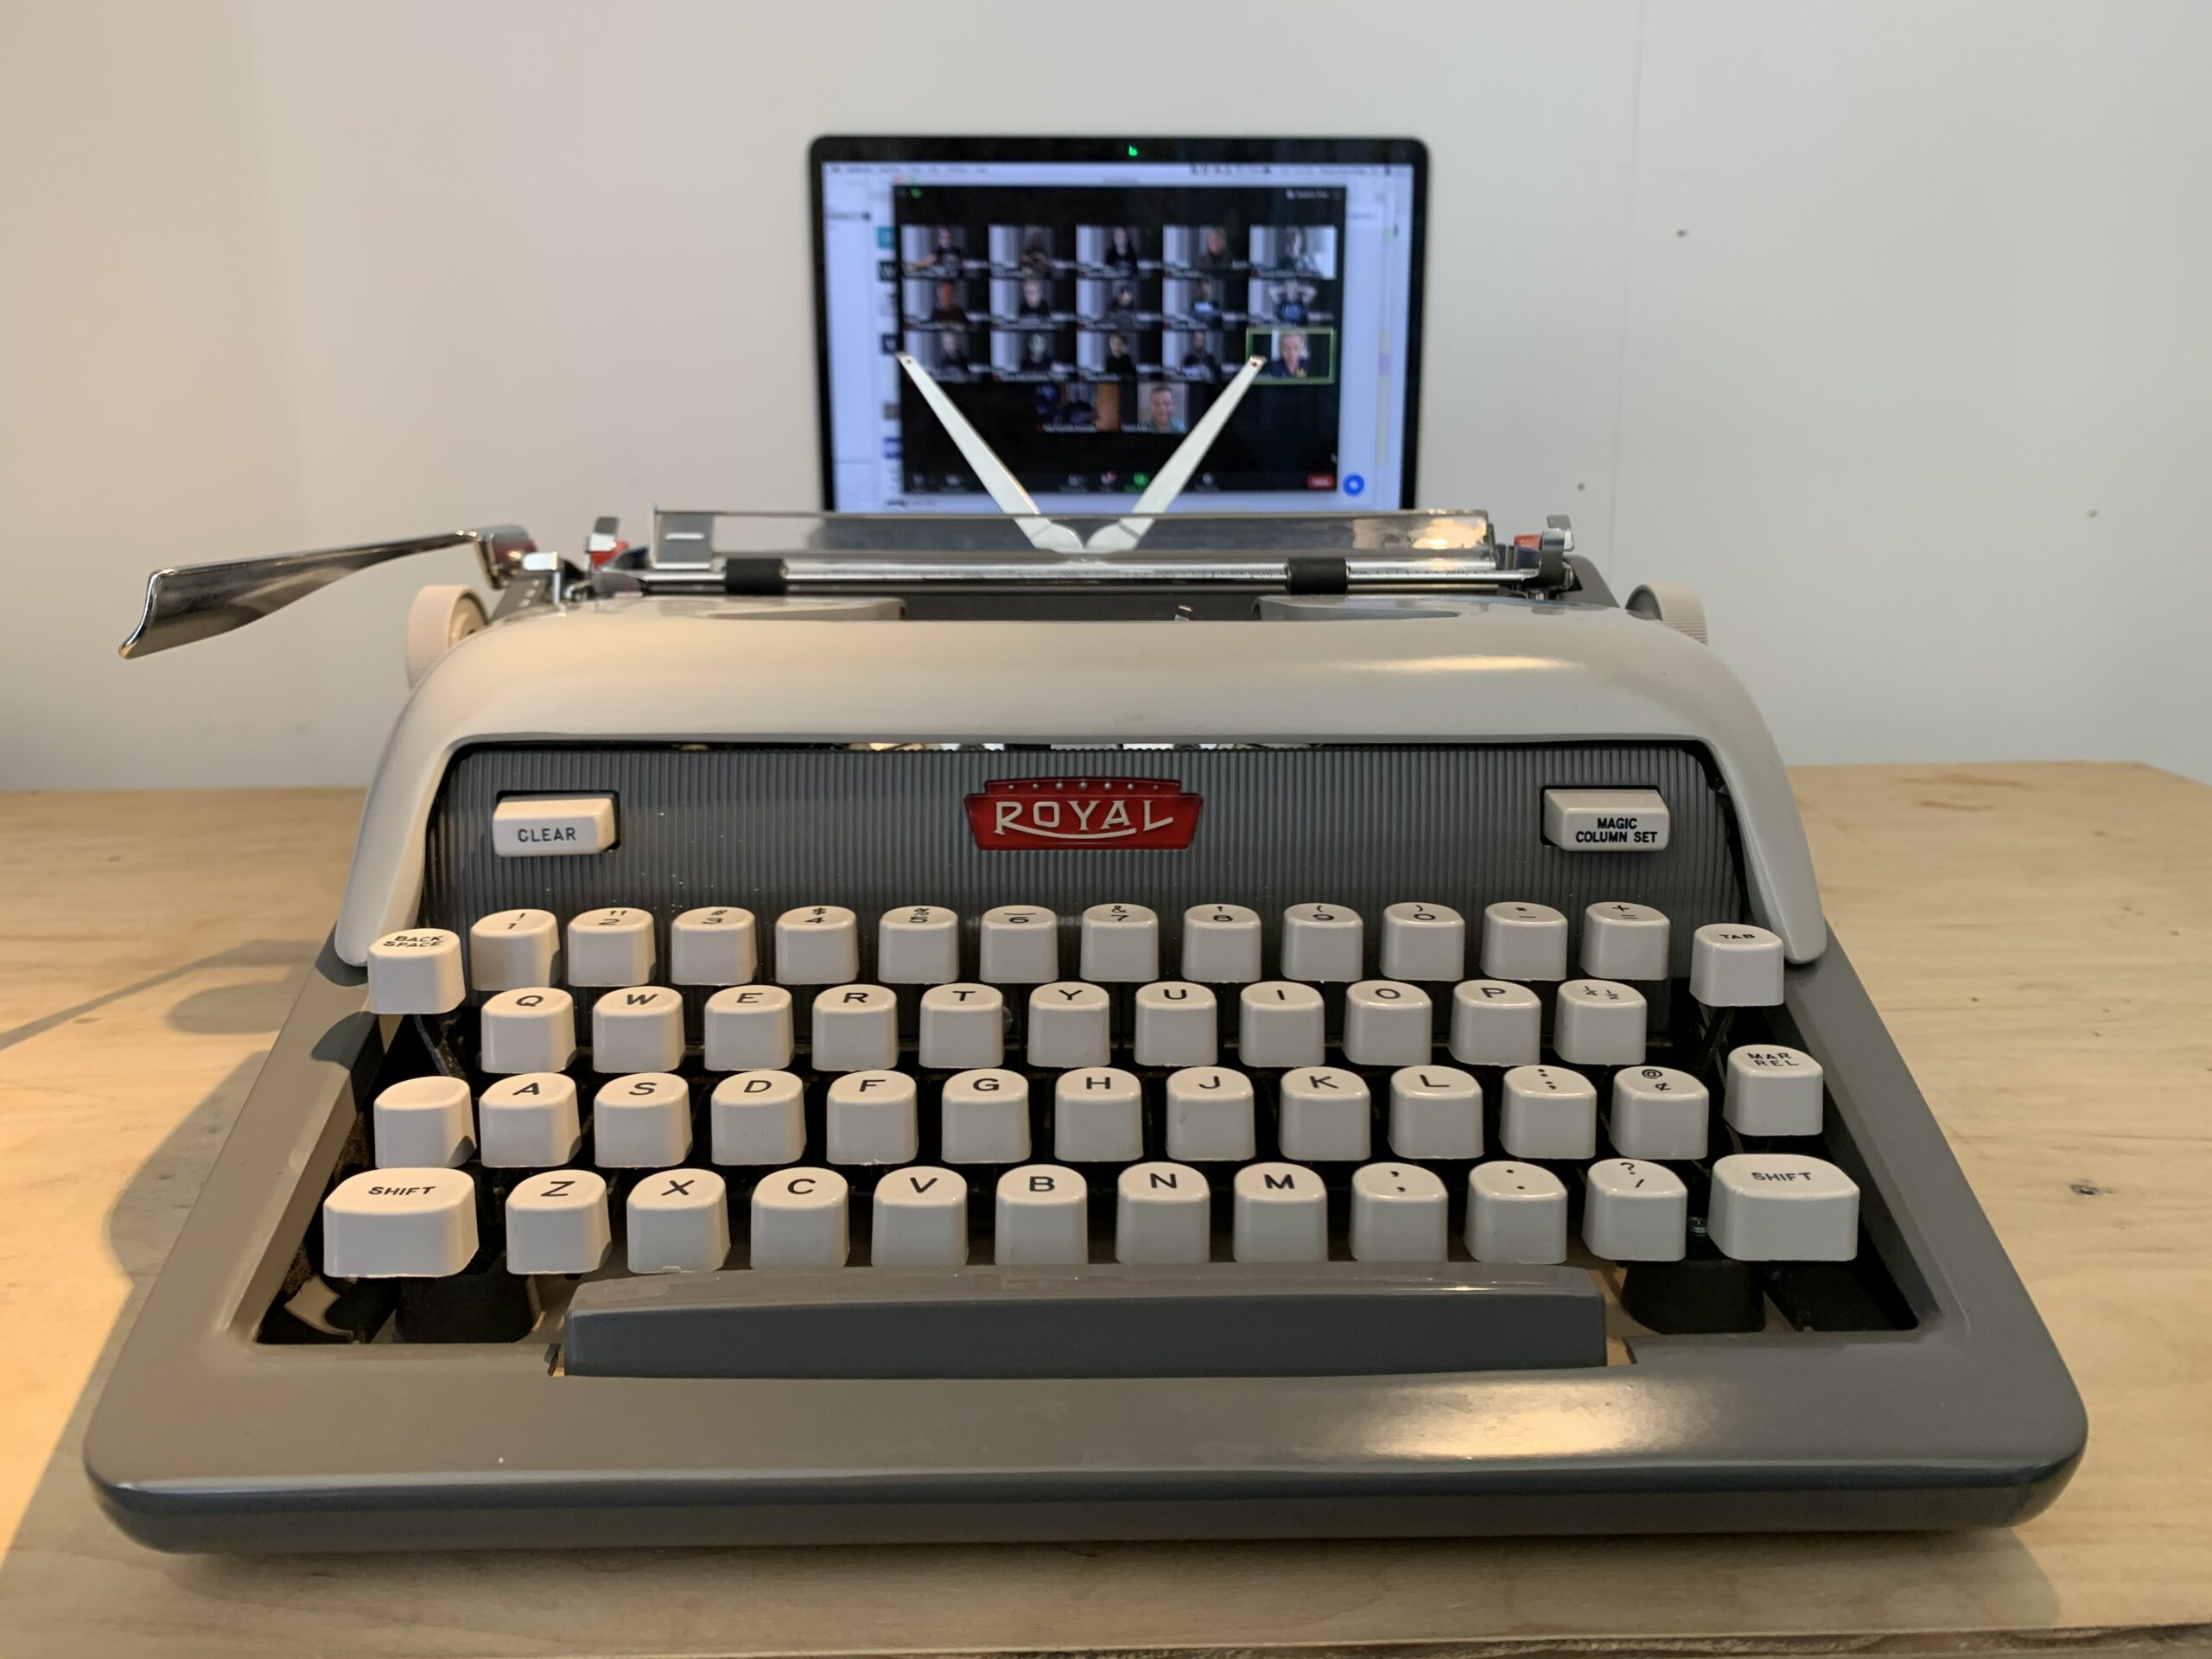 Typewriter with computer in background on zoom call.